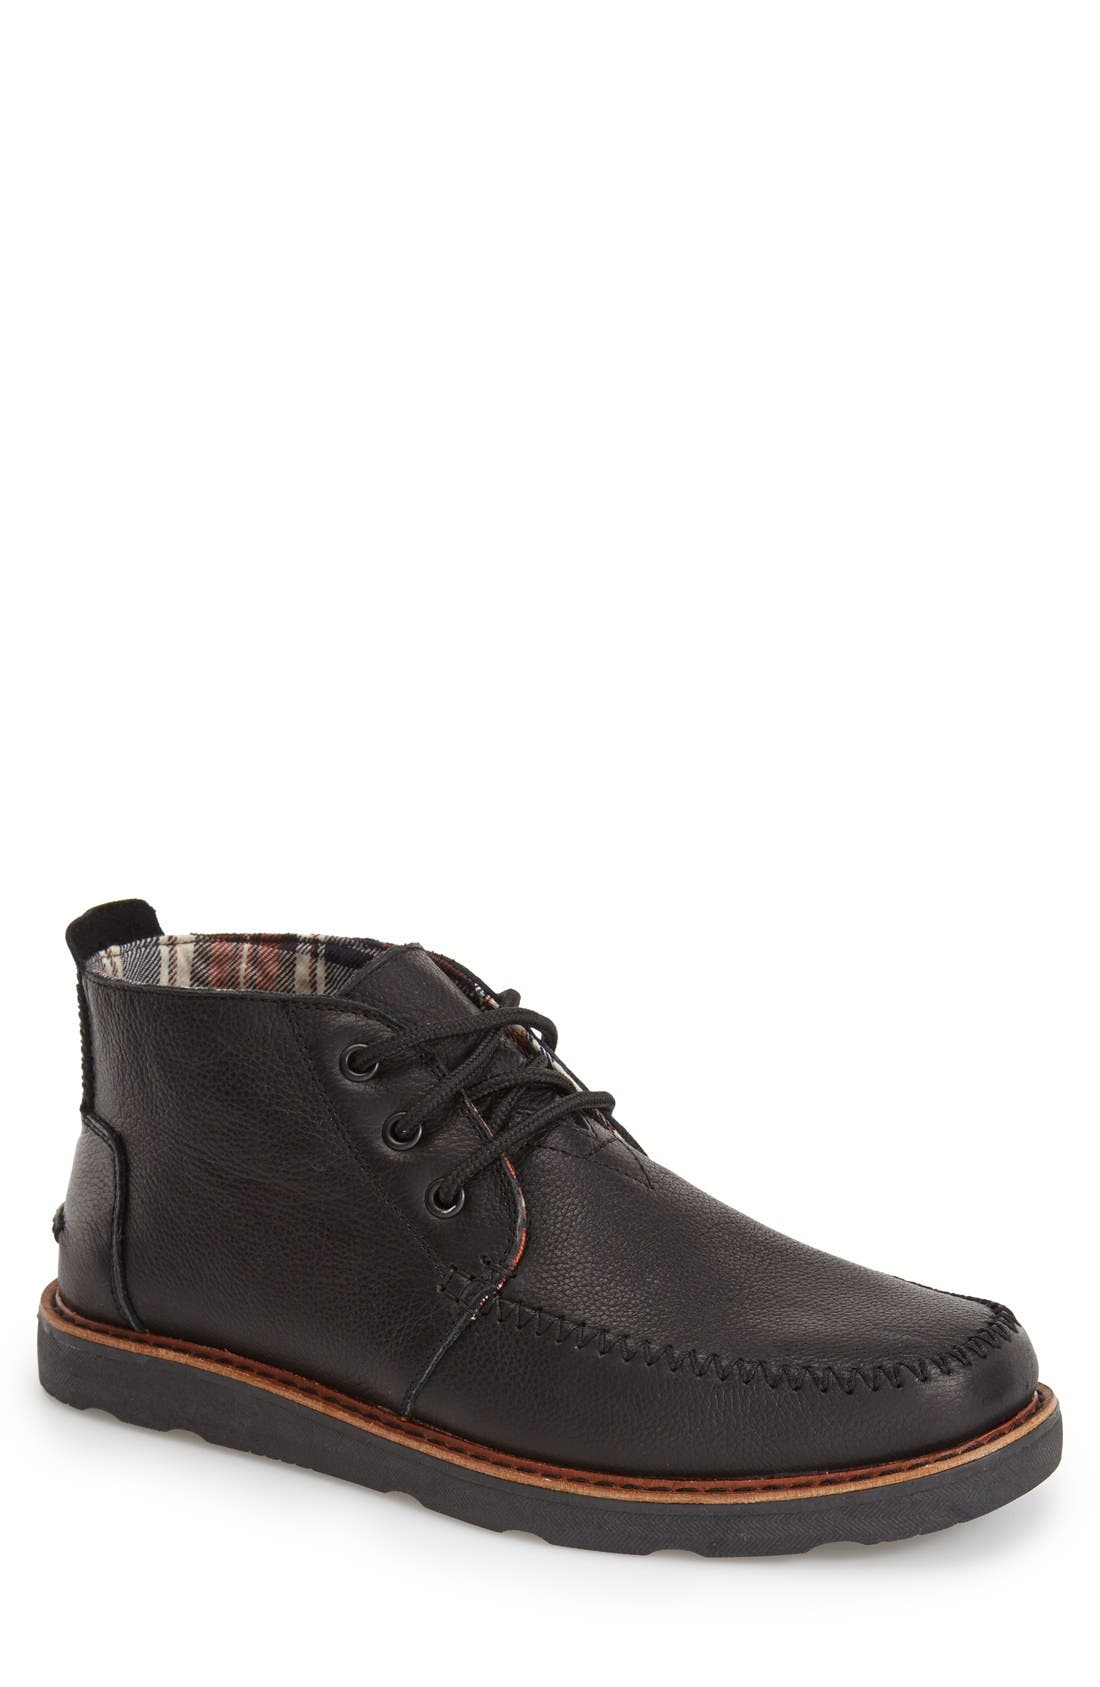 Waterproof Chukka Boot,                             Main thumbnail 1, color,                             001